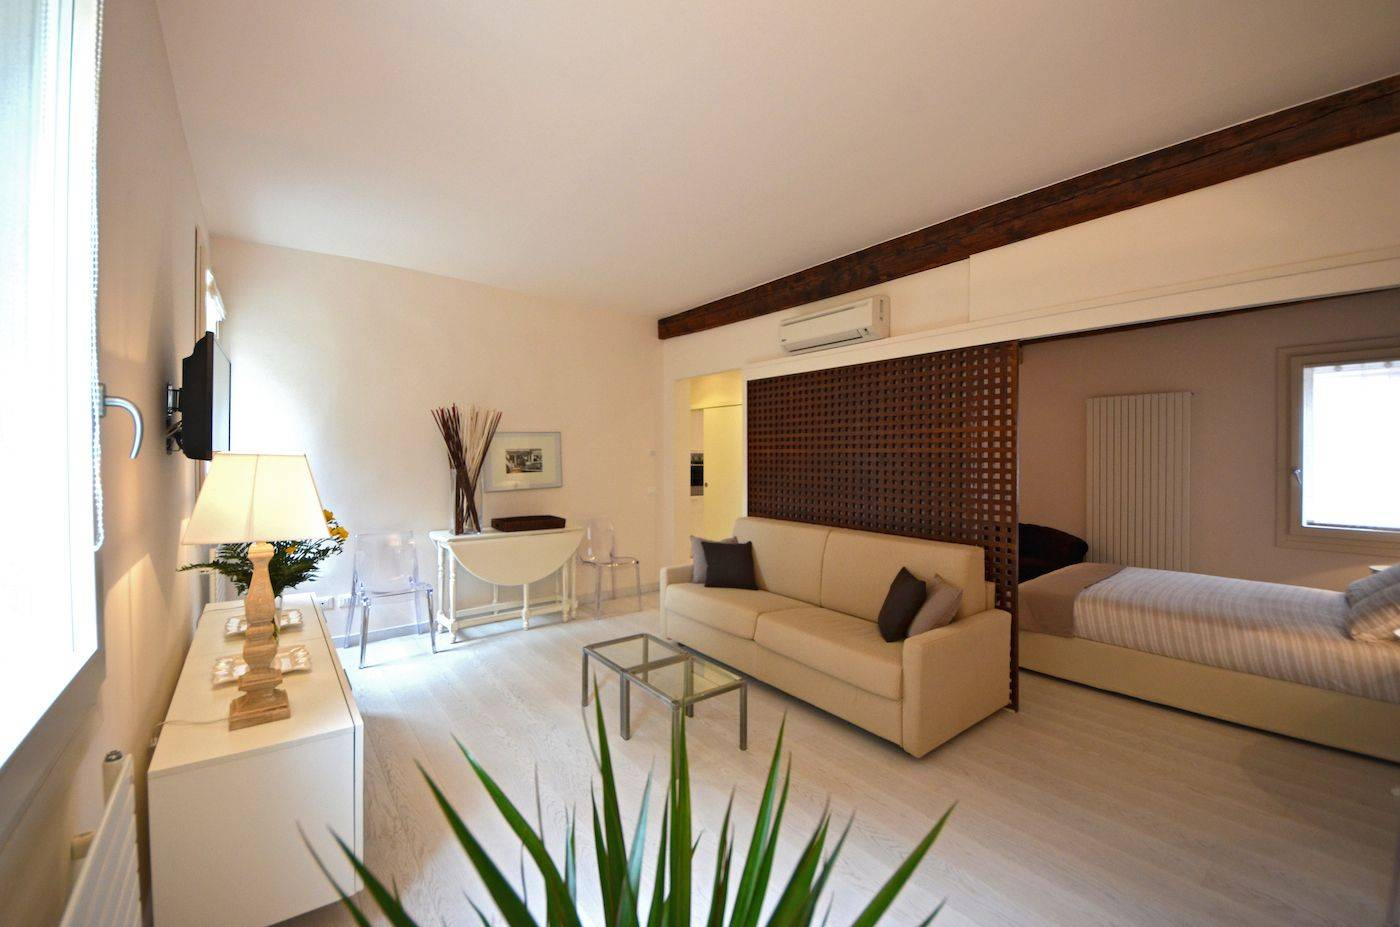 bright and spacious living room, easy living sort of apartment